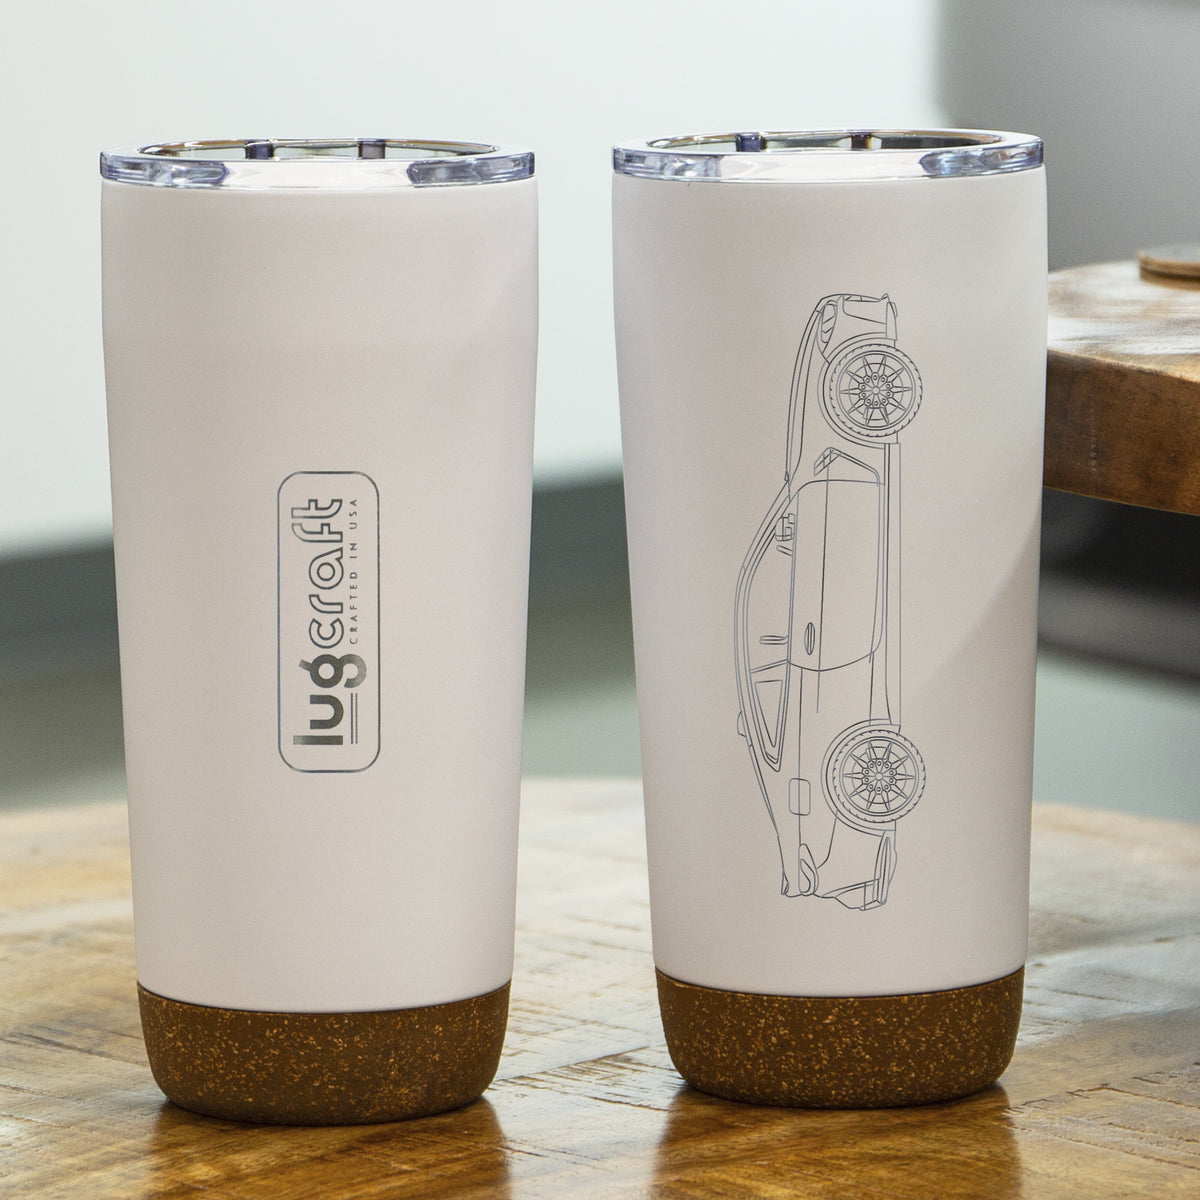 BMW M4 G82 Insulated Stainless Steel Coffee Tumbler - 20 oz